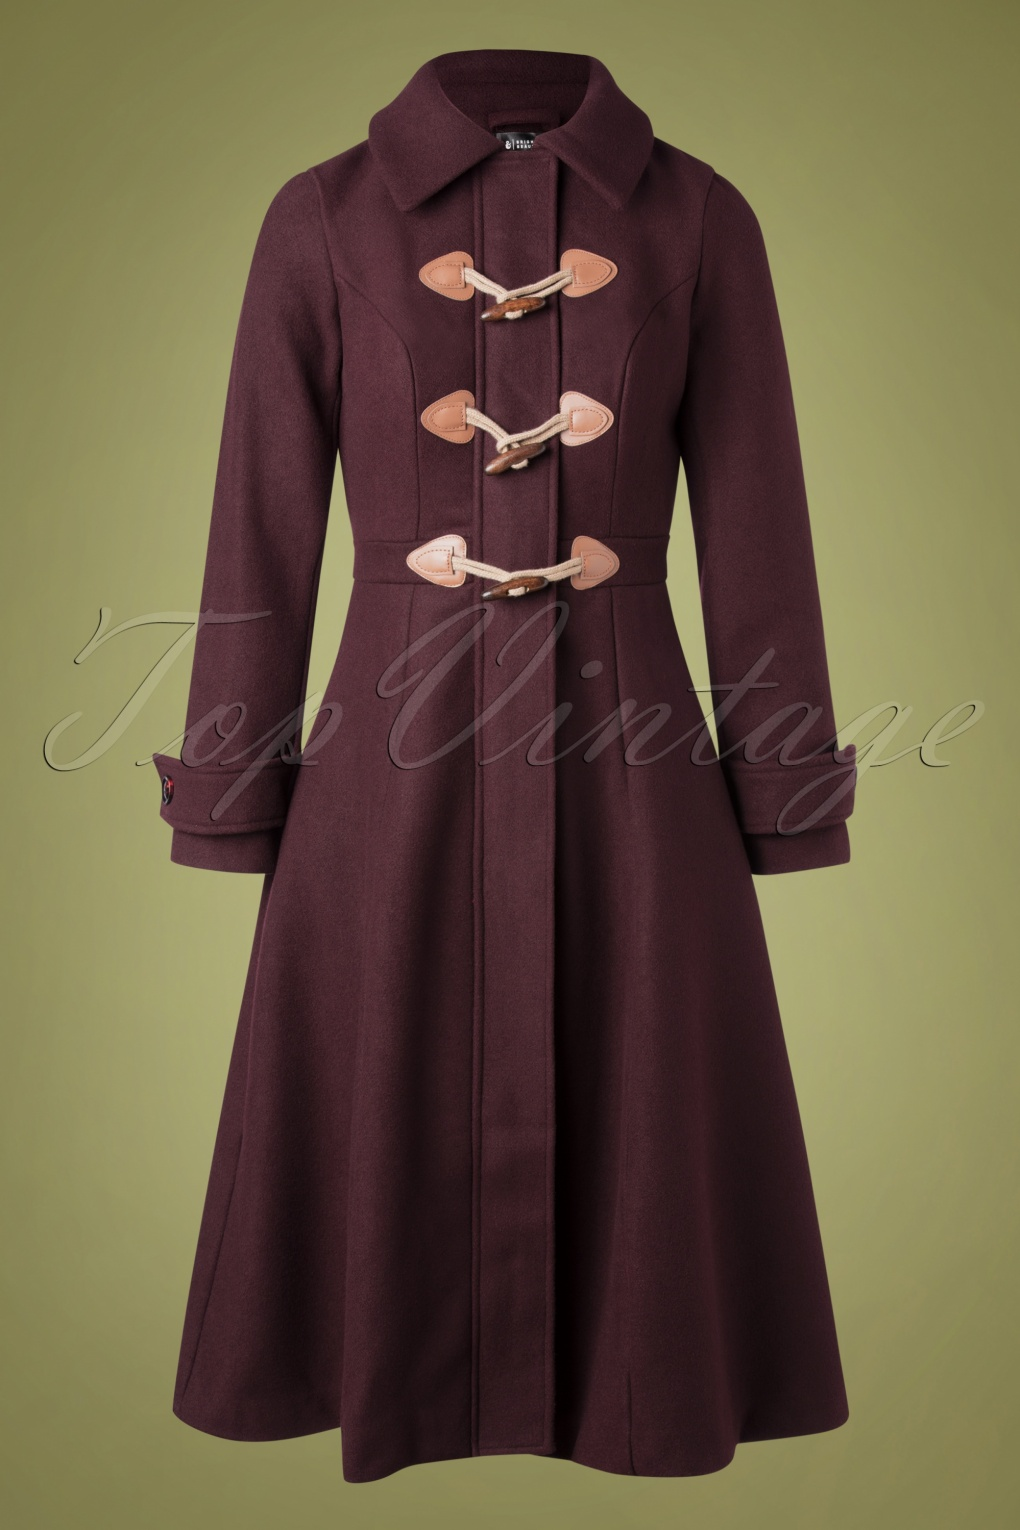 70s Outfits – 70s Style Ideas for Women 70s Lenny Plain Coat in Burgundy £135.63 AT vintagedancer.com